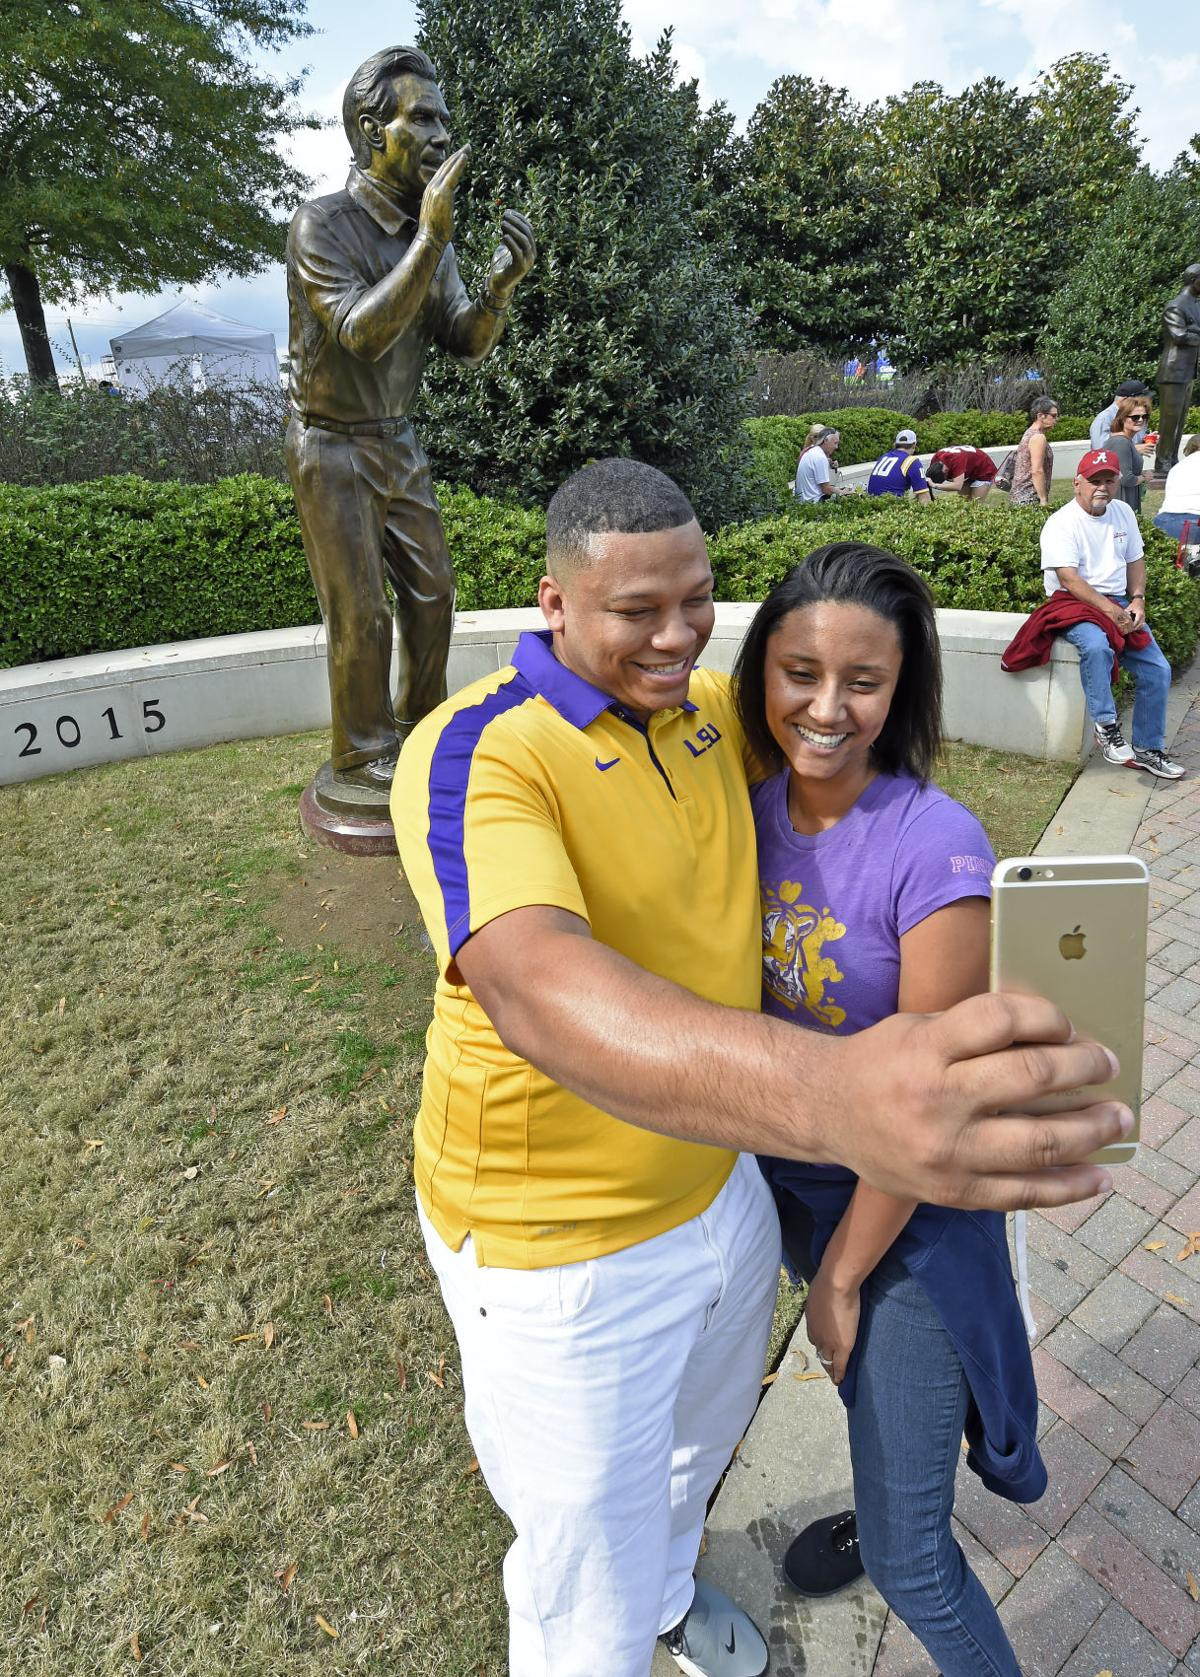 lsufans0016.110517 bf